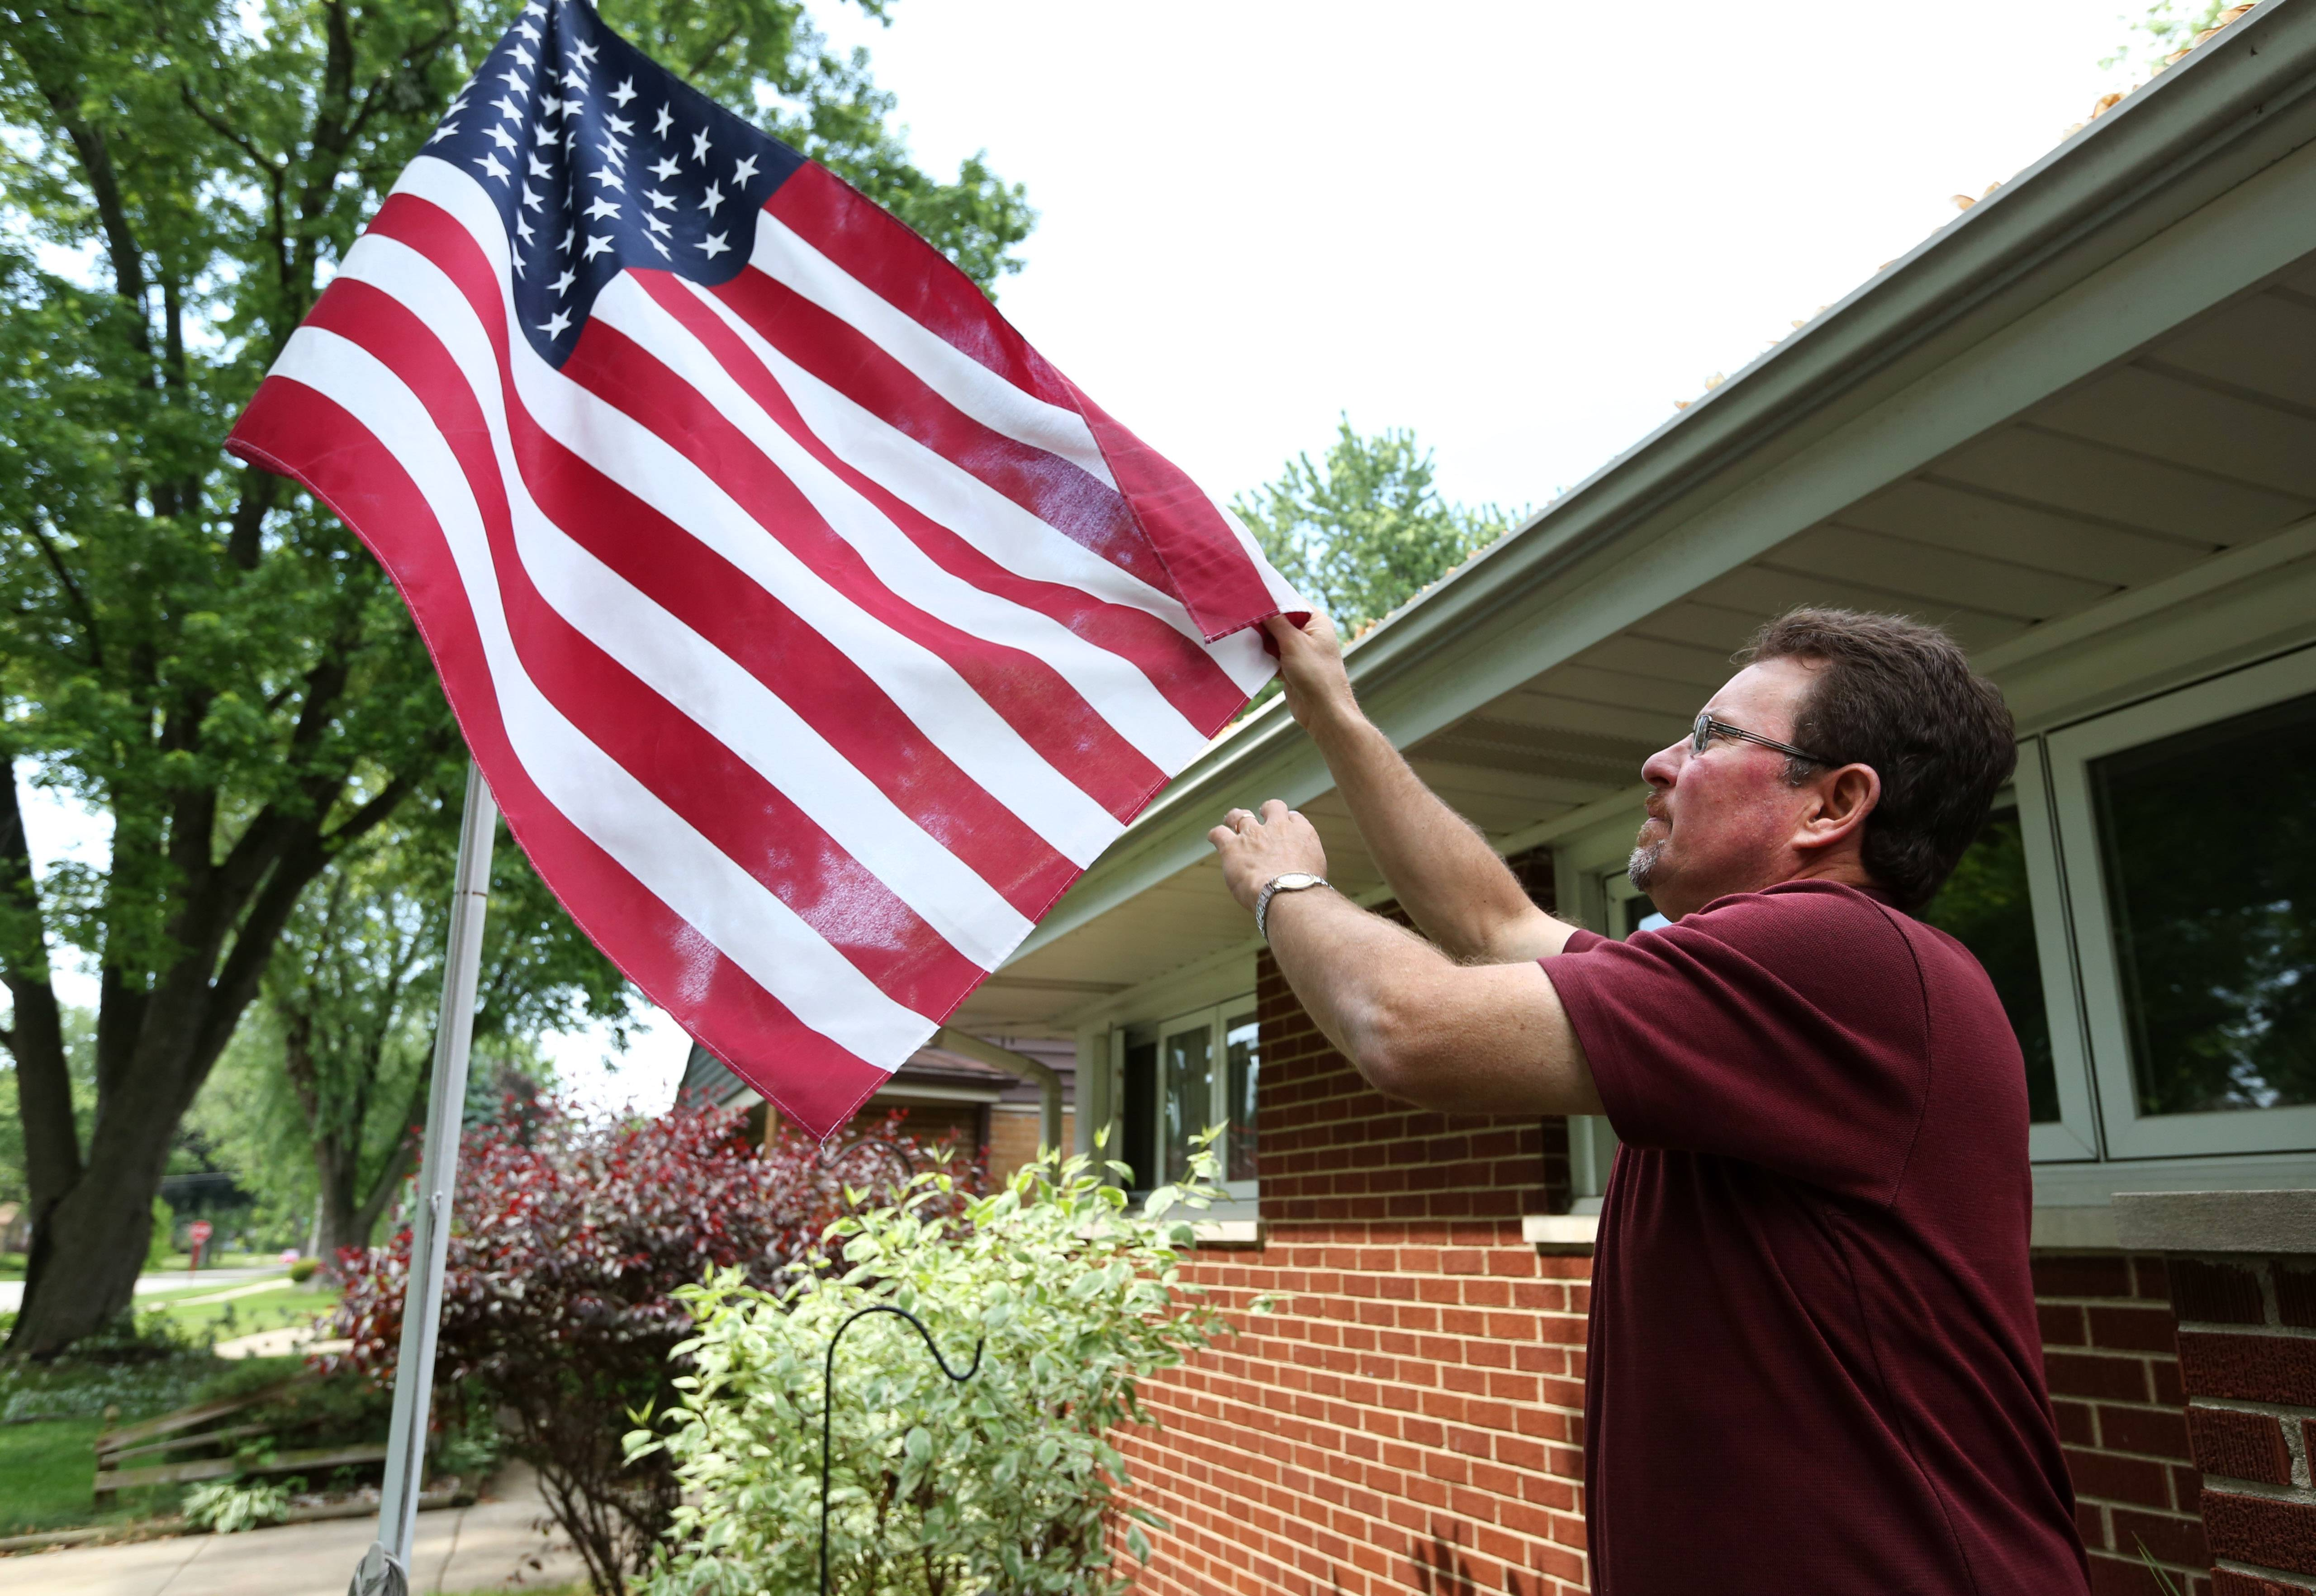 Postmaster Mike Naranjo outside his Mount Prospect home. Naranjo flies the flag to honor his, and others', government service.